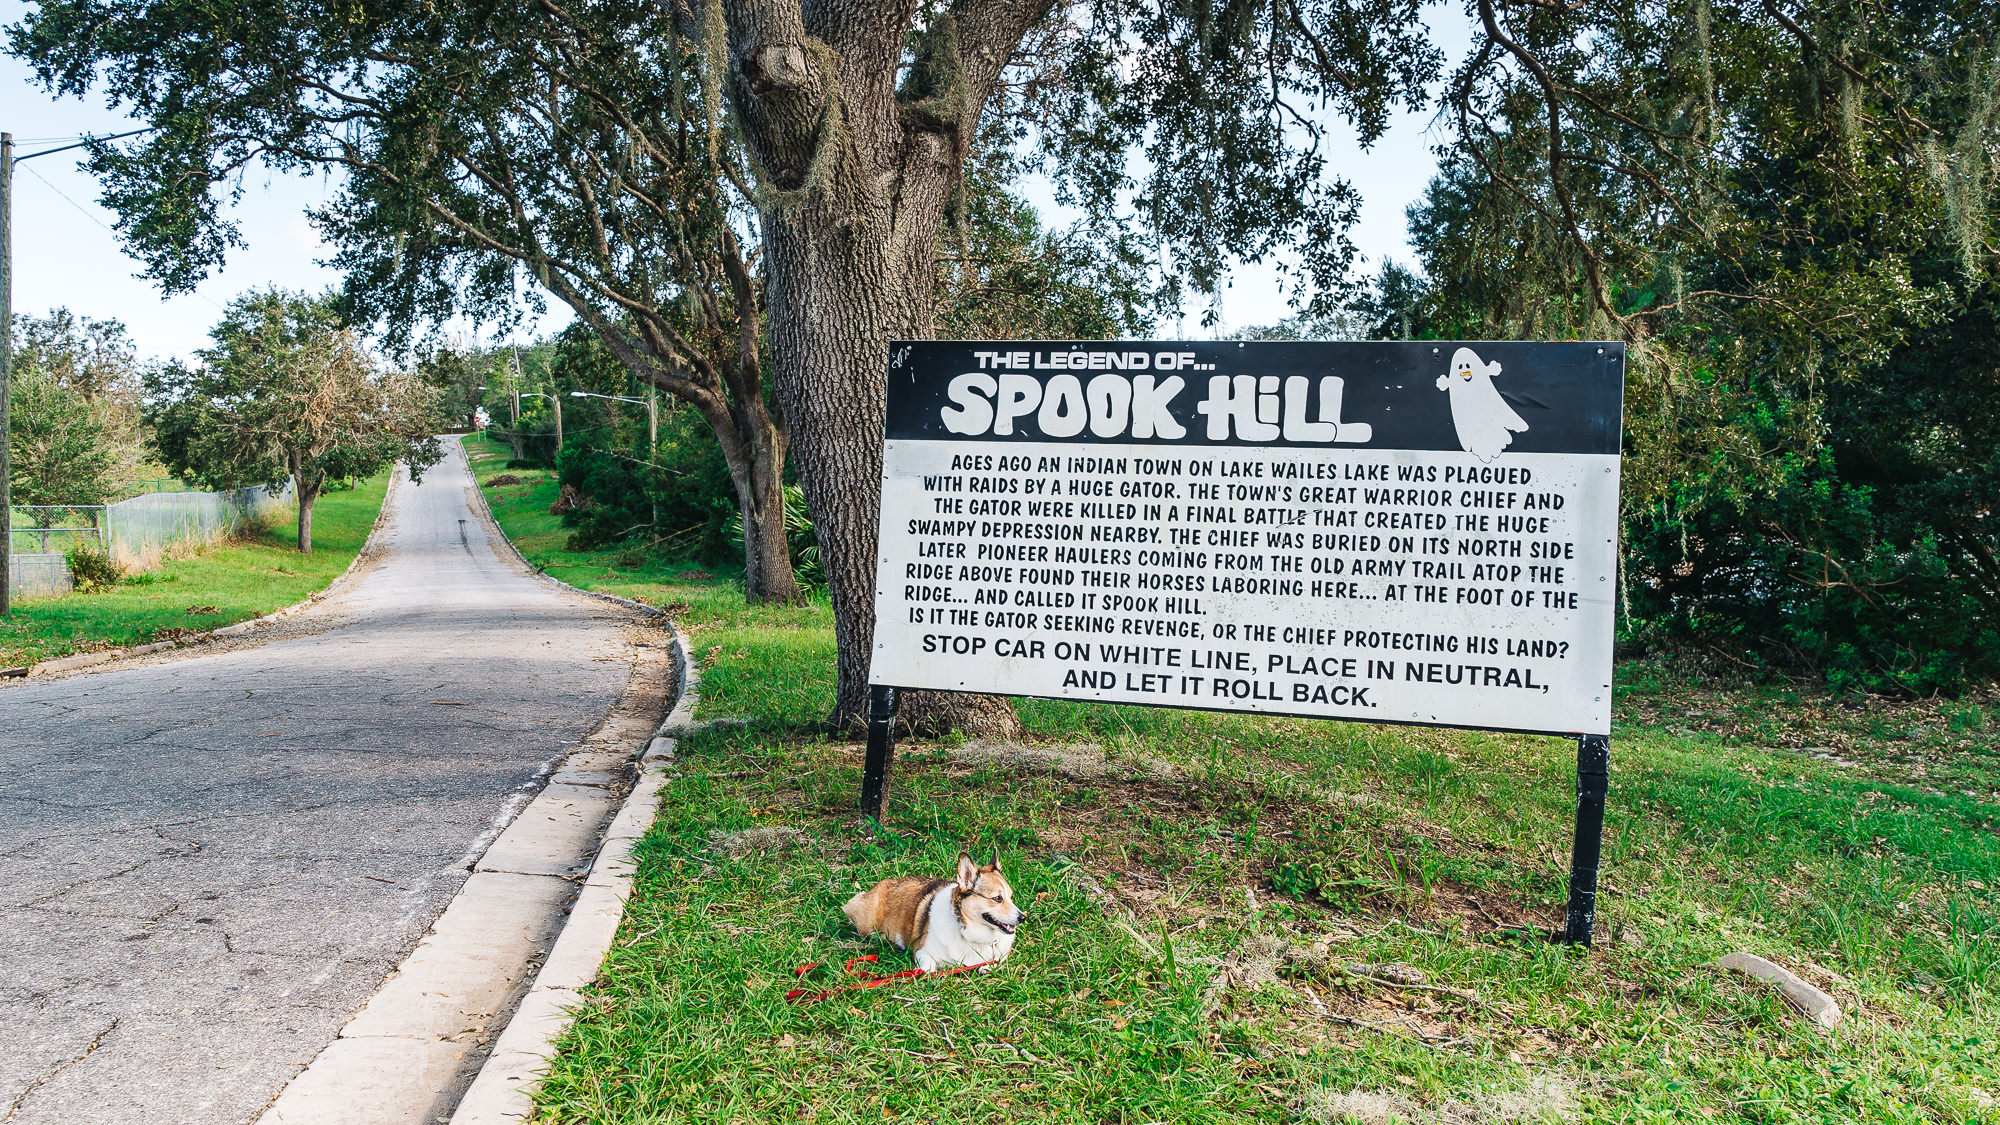 make sure you take a picture with the Spook Hill sign like Miss Kuma